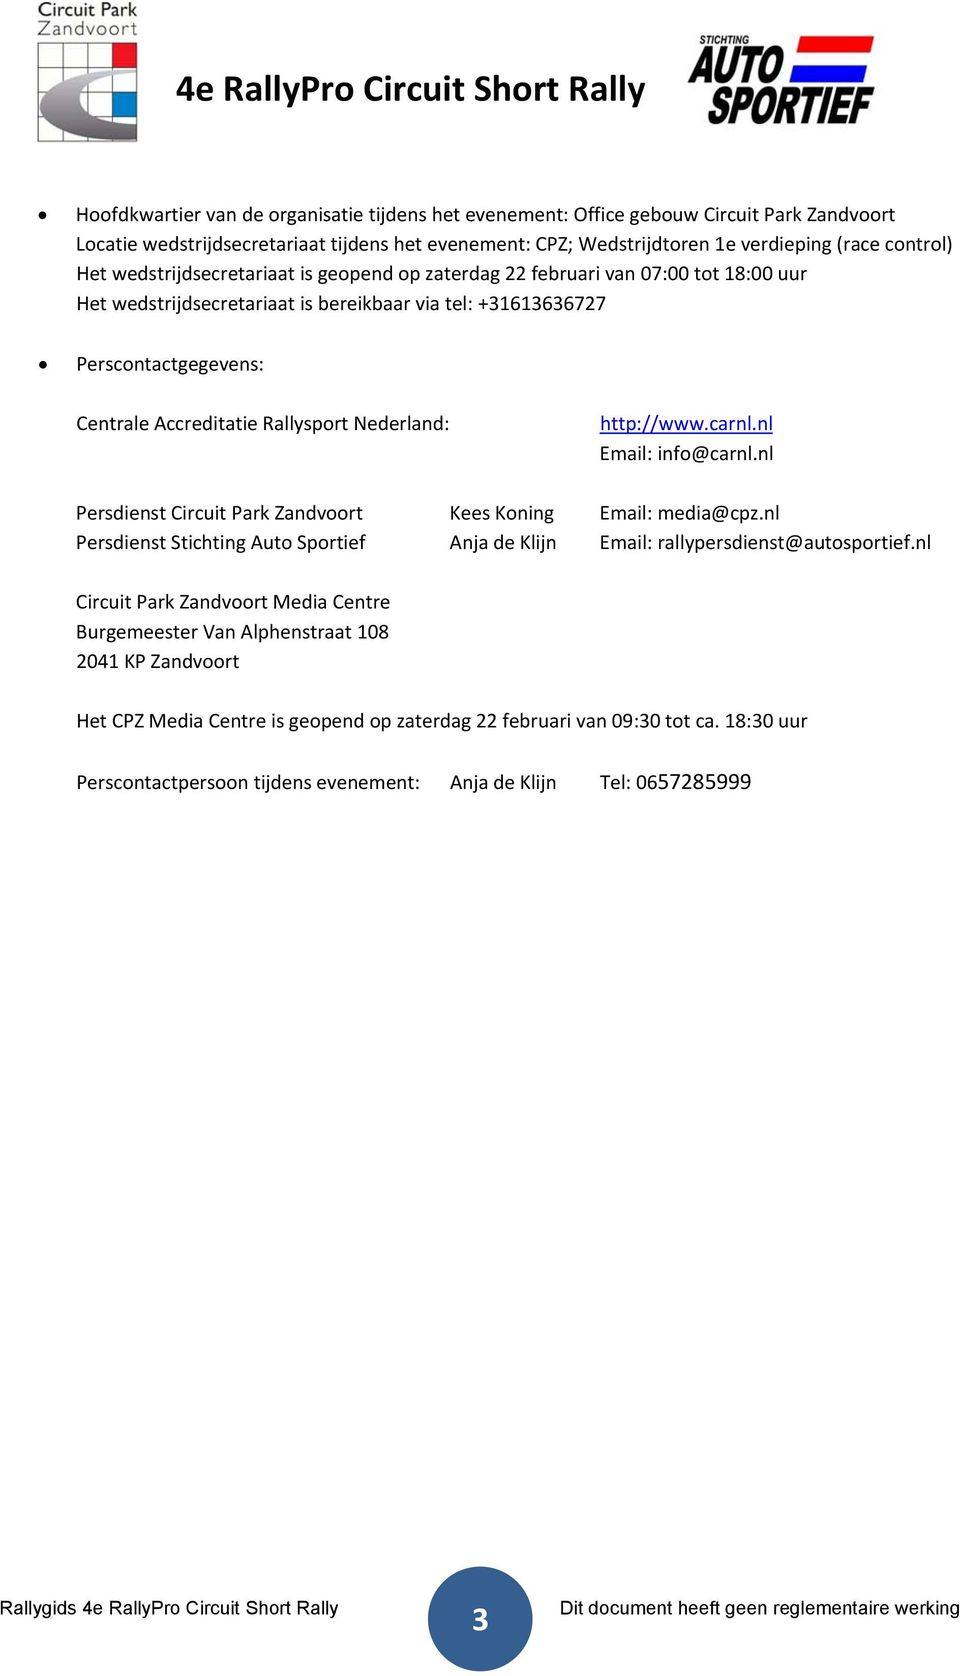 Nederland: http://www.carnl.nl Email: info@carnl.nl Persdienst Circuit Park Zandvoort Kees Koning Email: media@cpz.